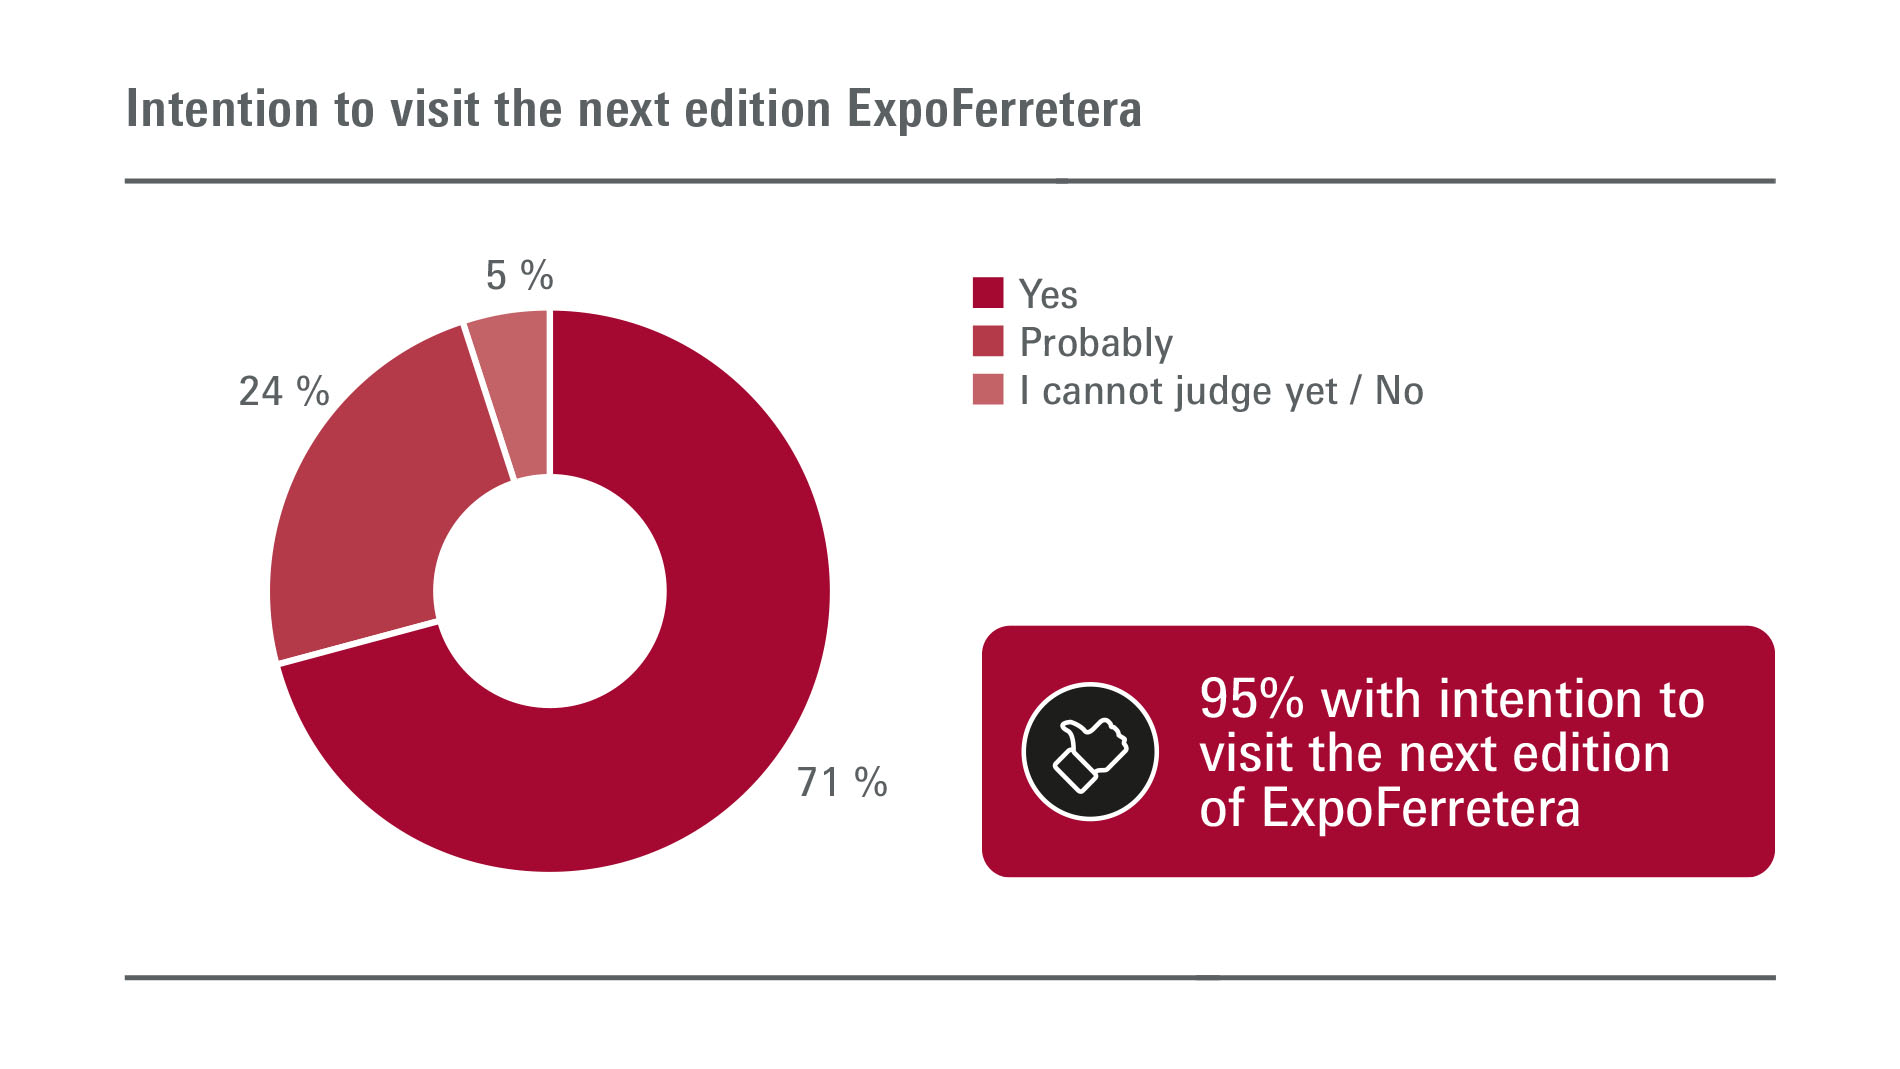 ExpoFerretera: Visitors - intention to visit next edition